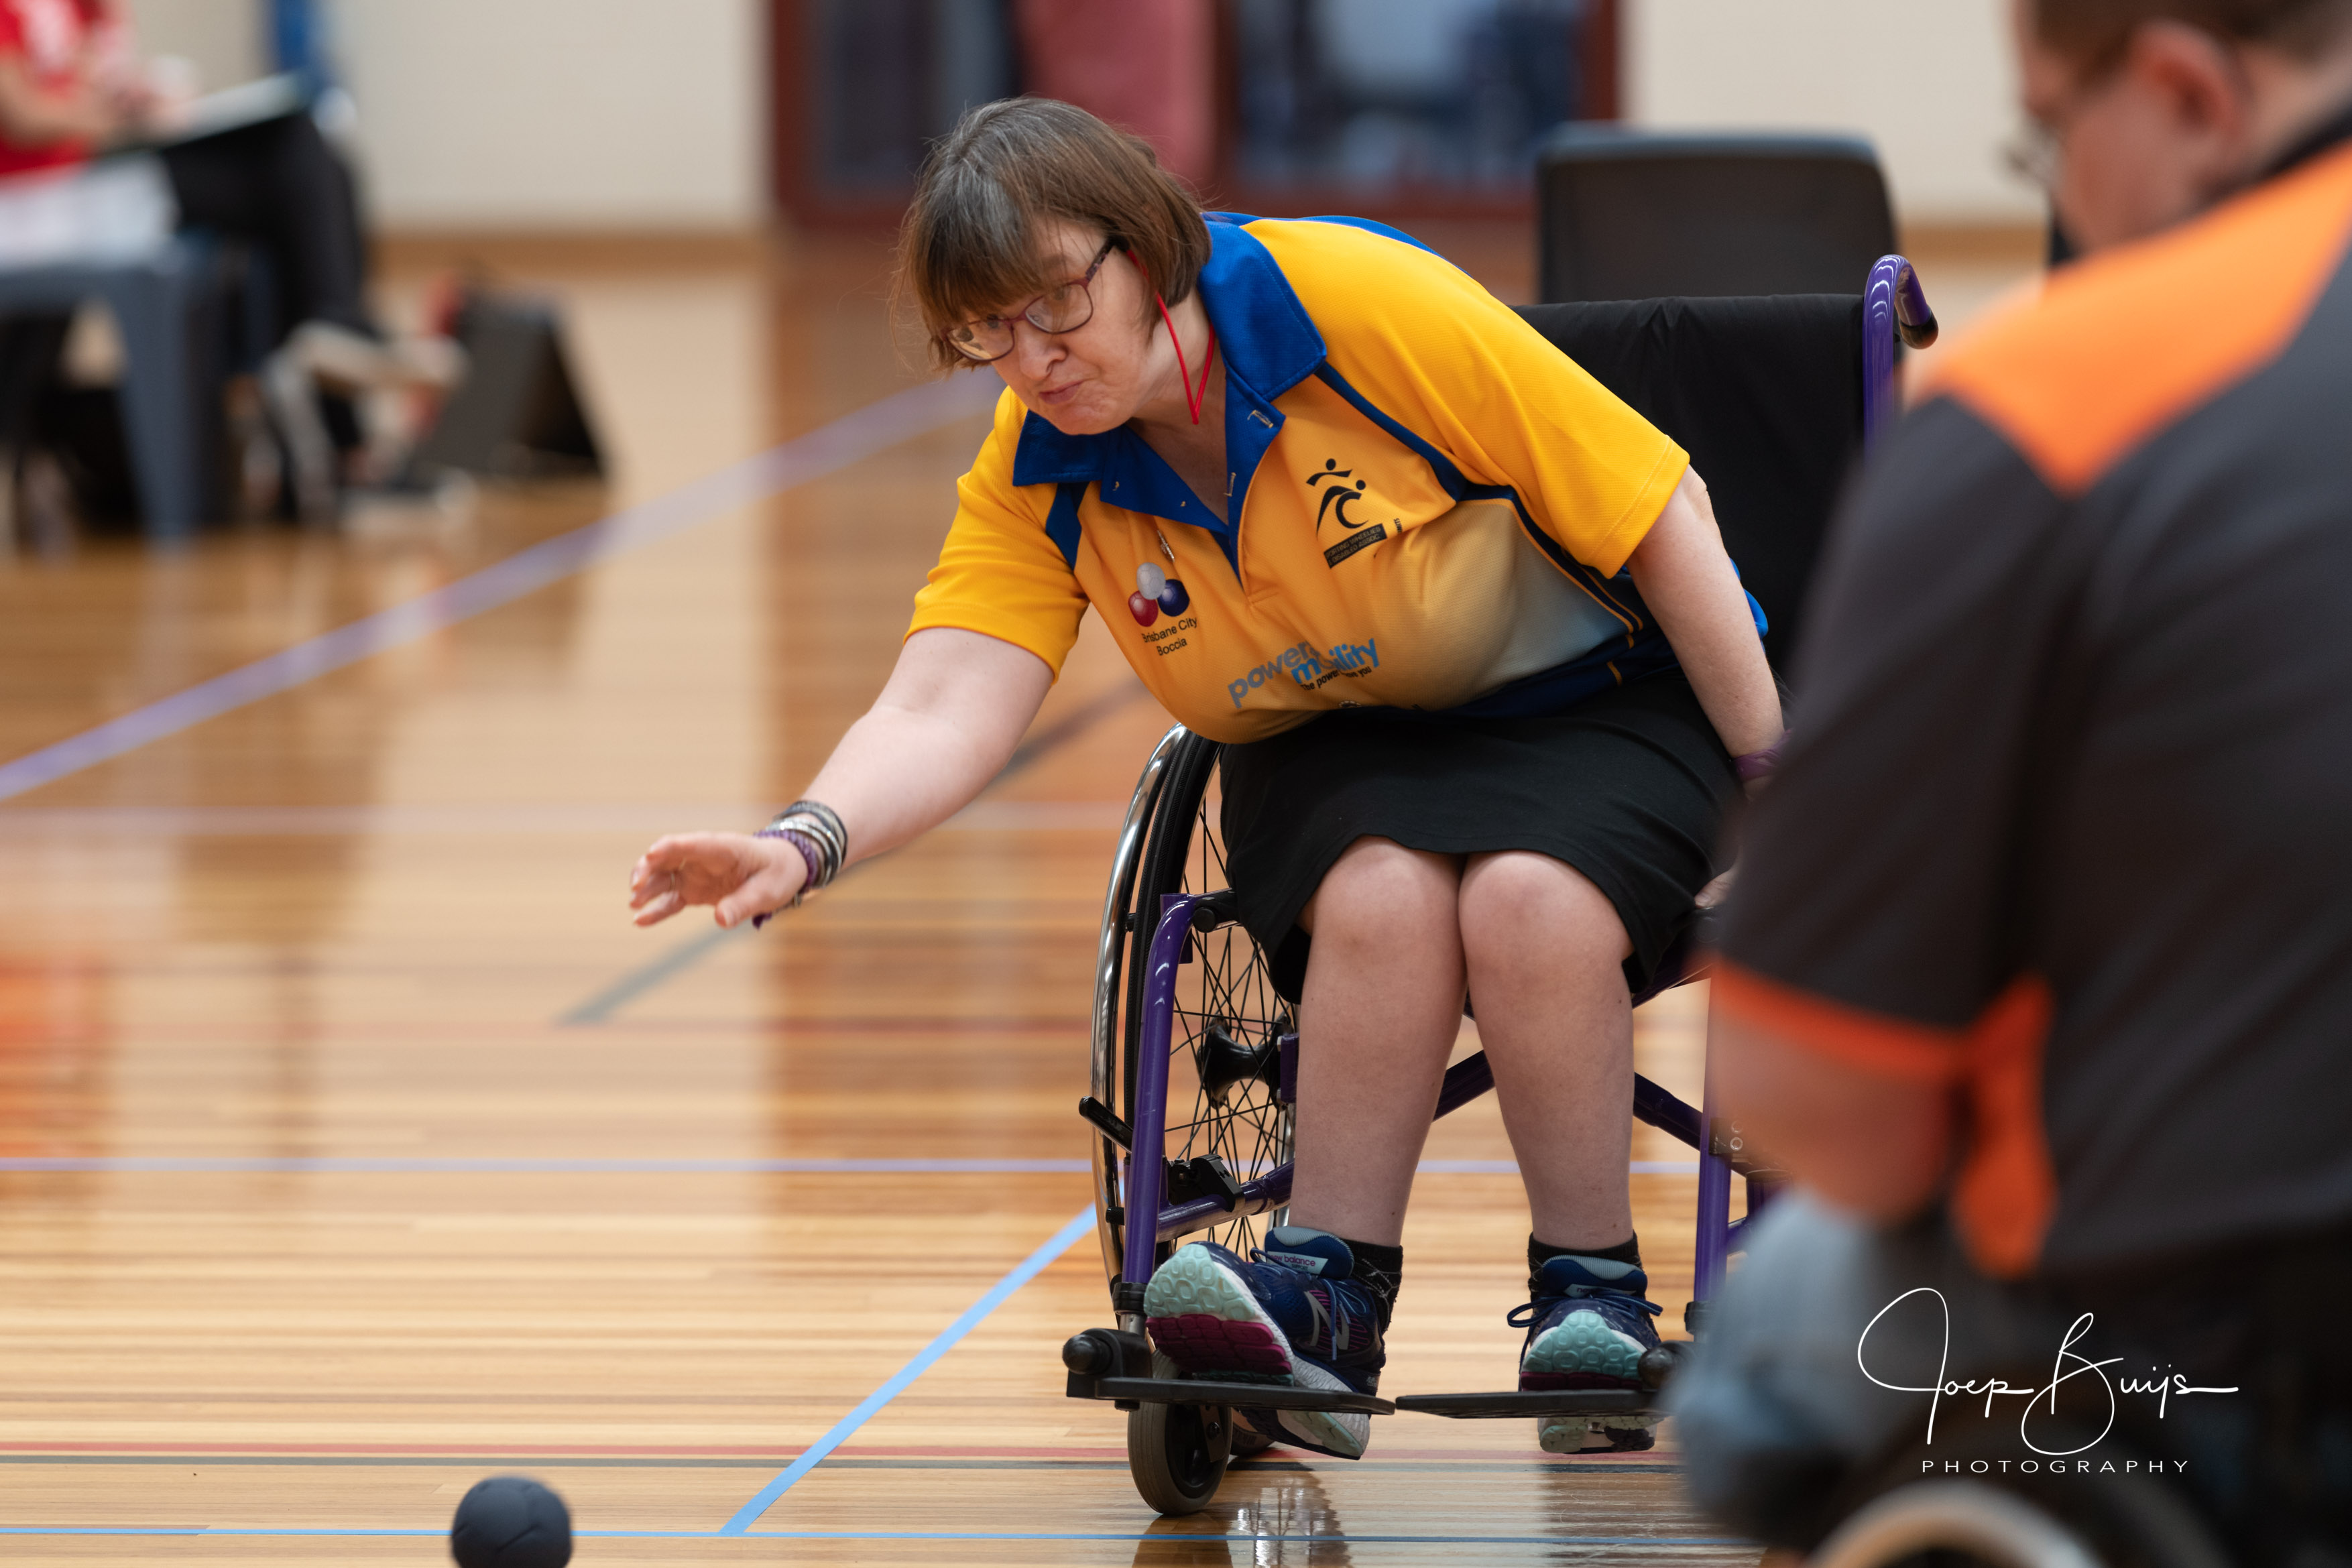 Ladie throwing a boccia ball from her wheelchair